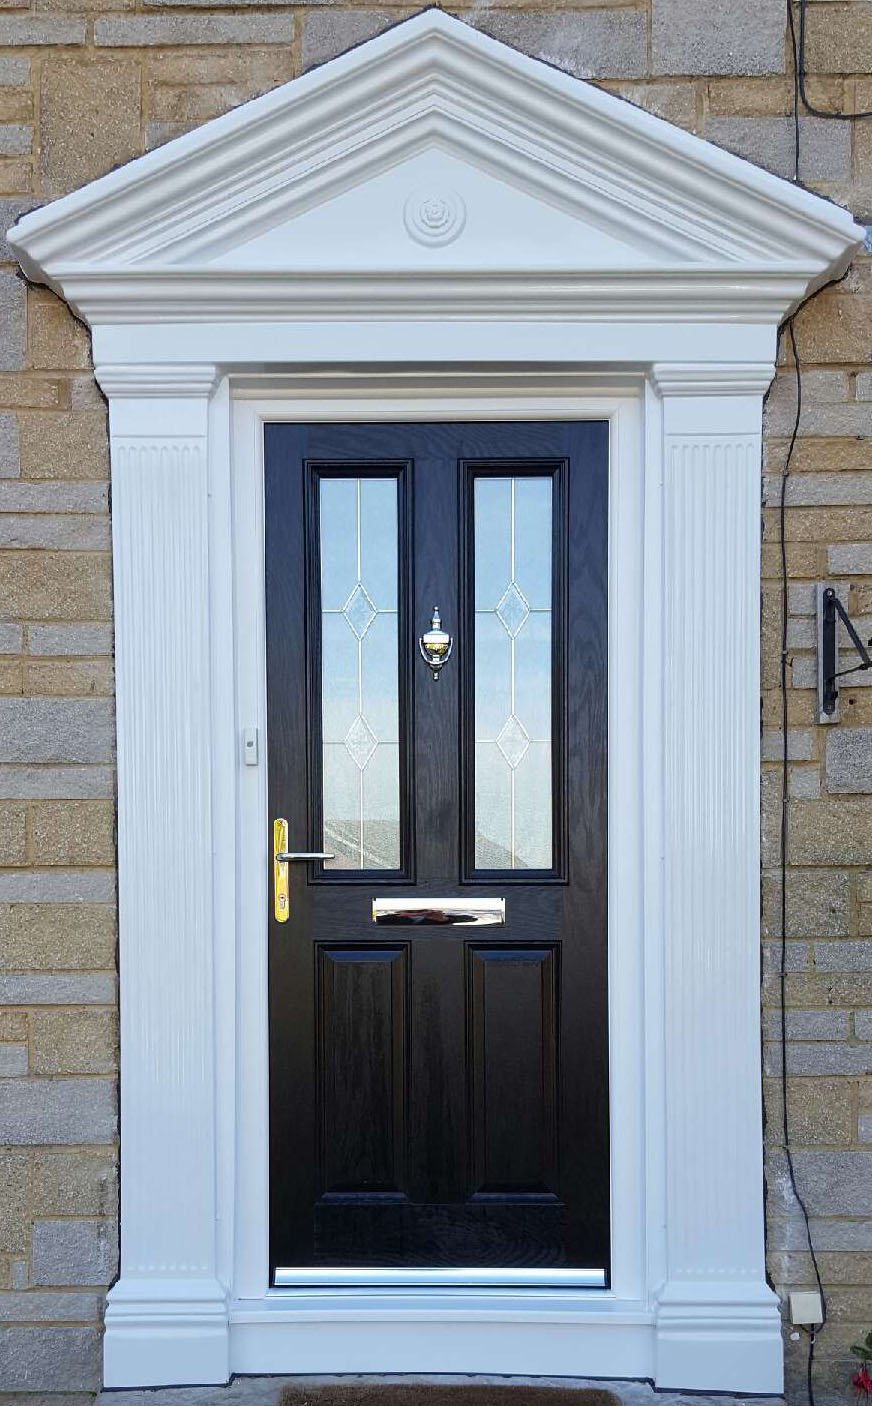 Black Seville 2 composite door with Classic glass